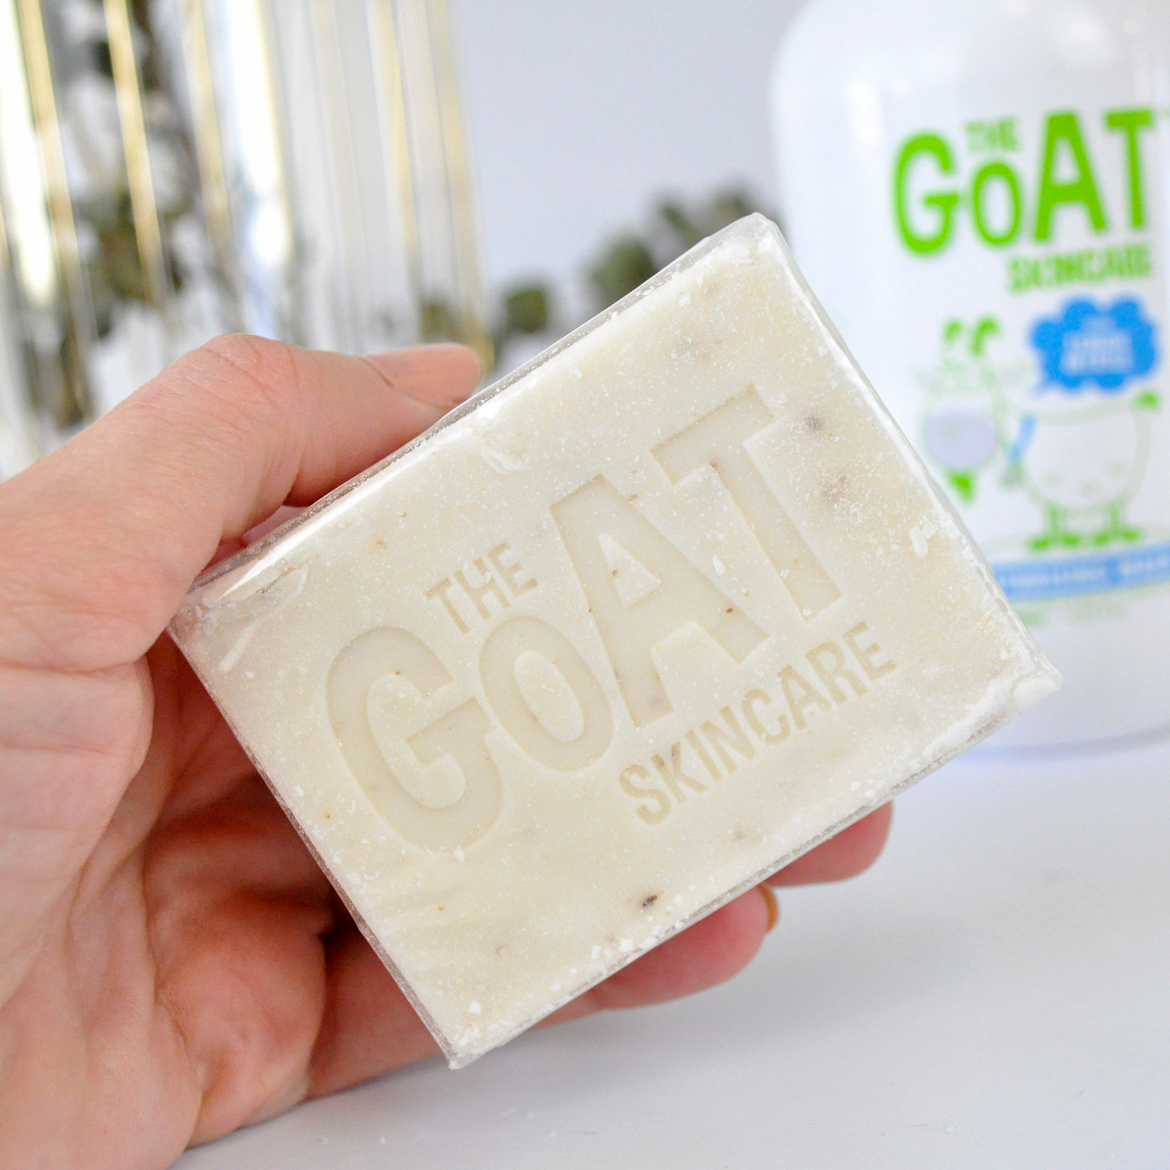 The Goat Skincare Soap Bar